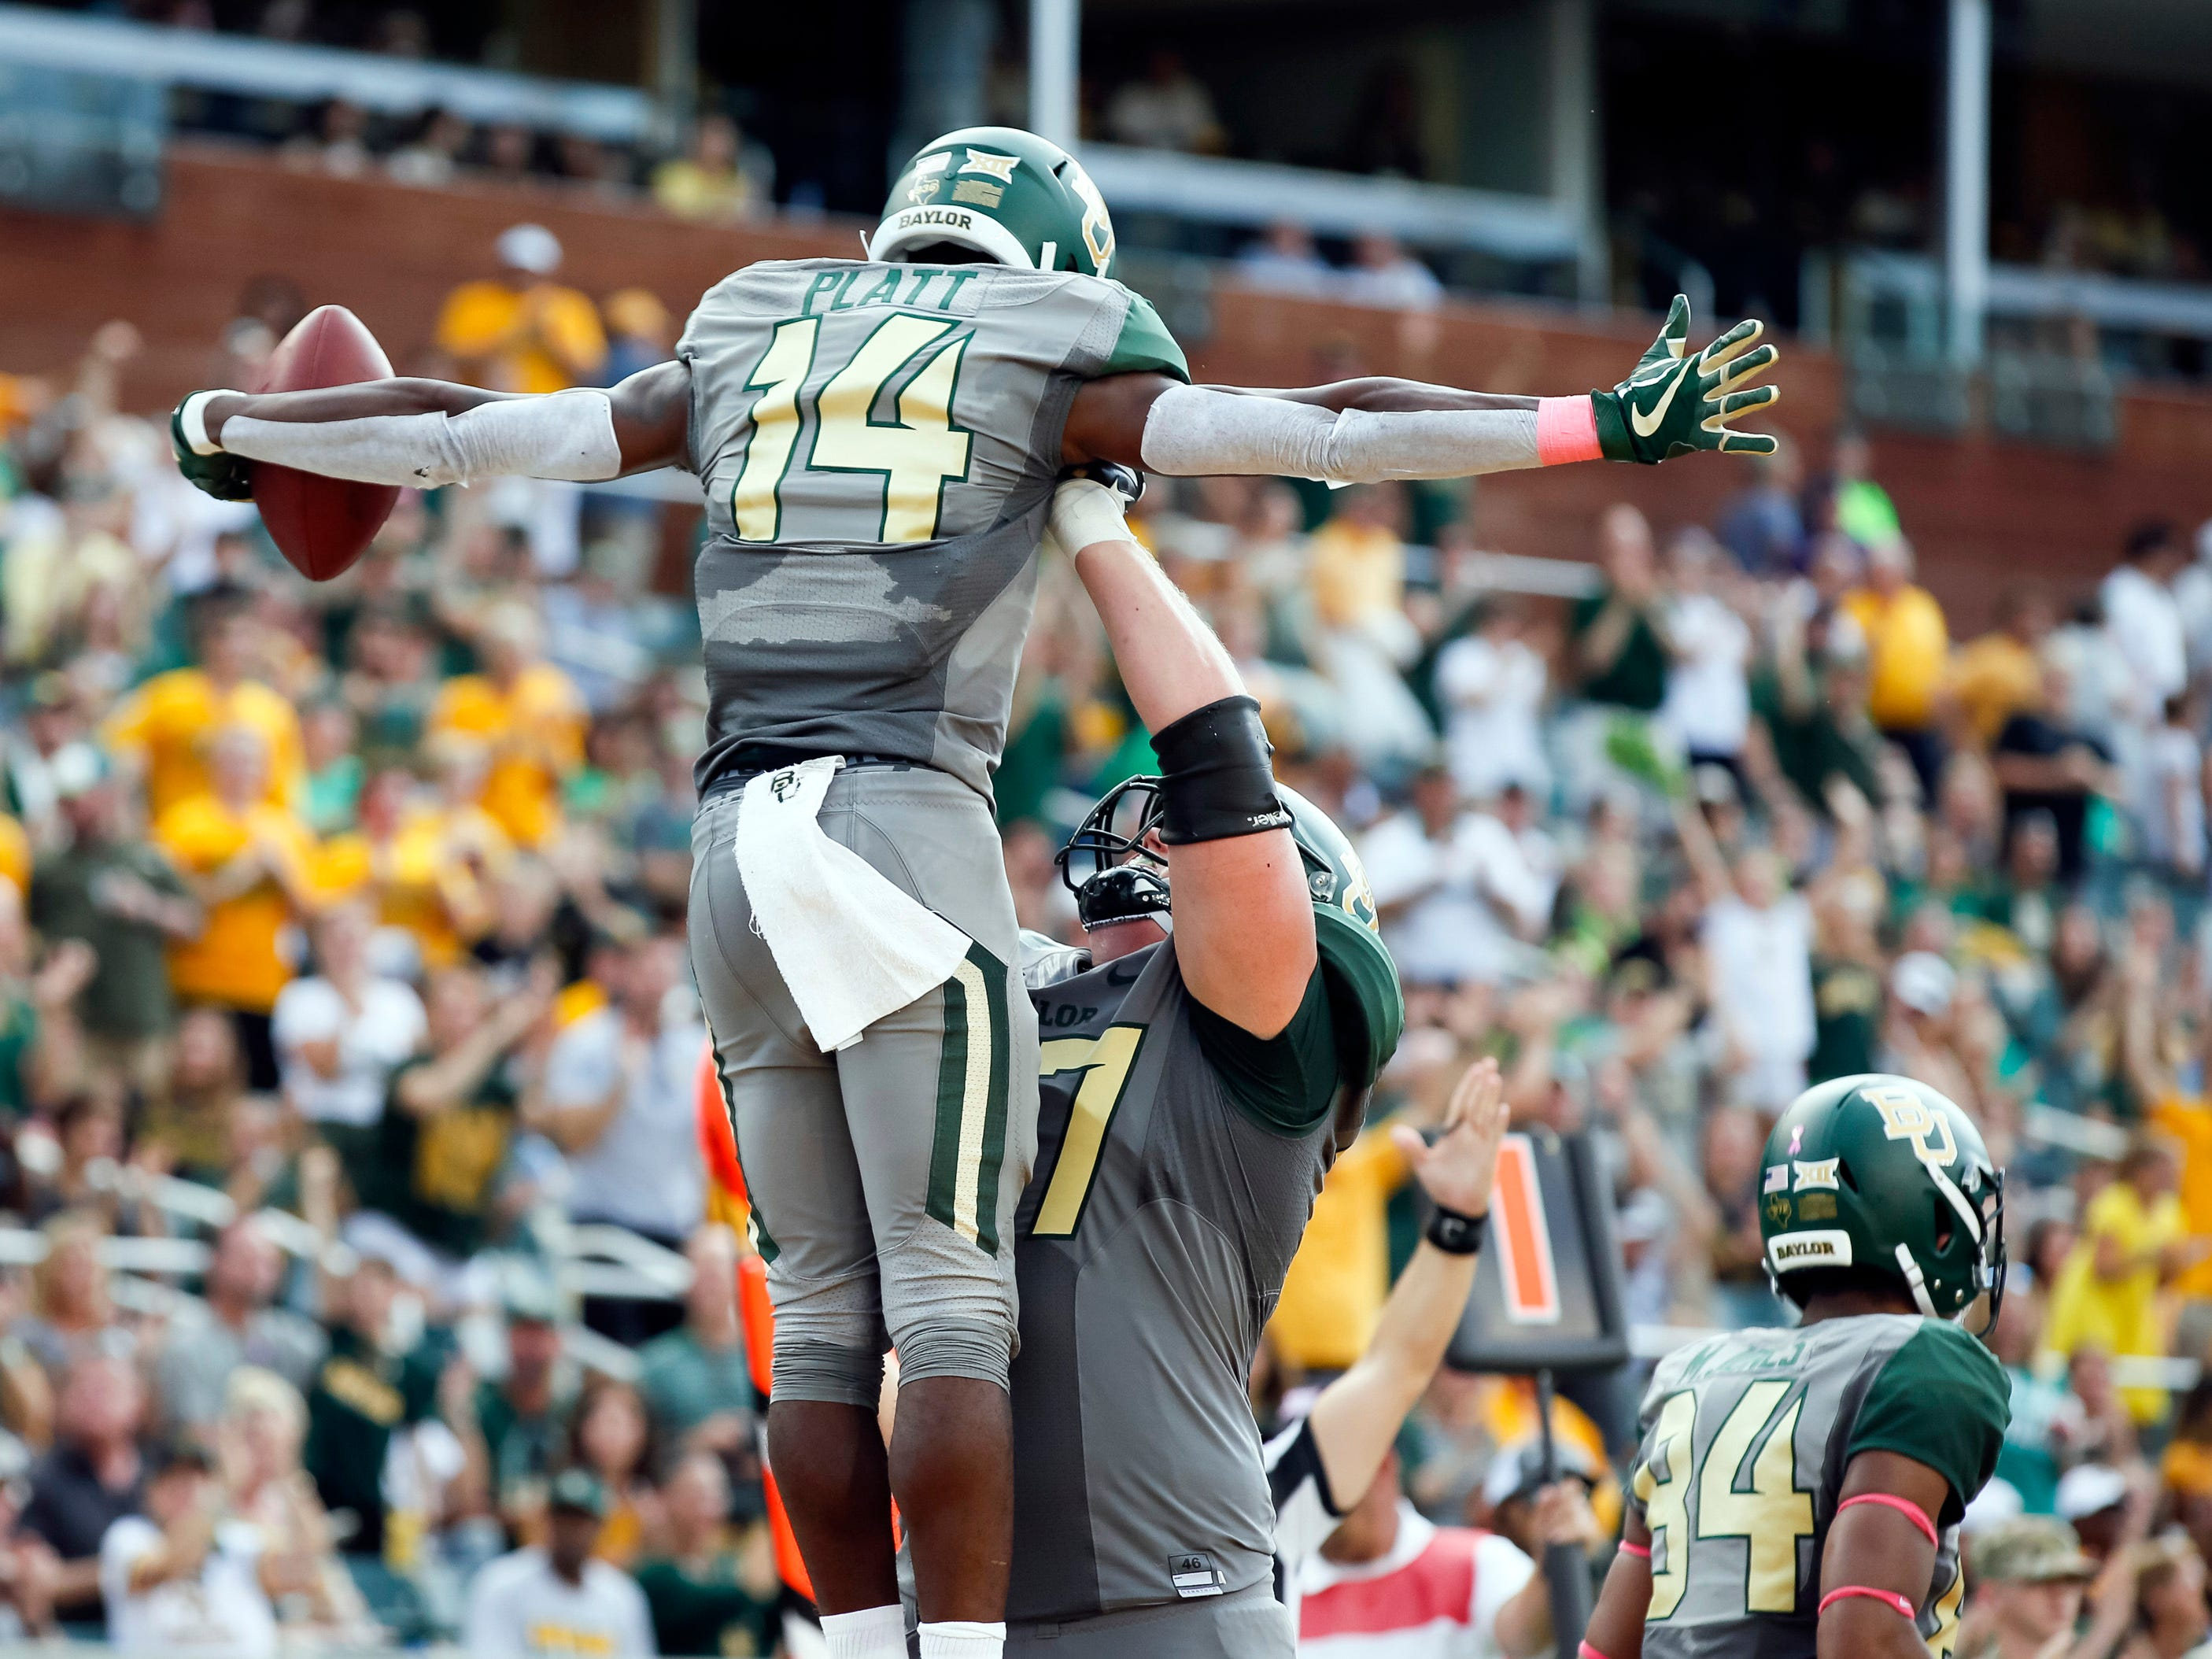 Baylor Bears wide receiver Chris Platt is lifted in the air by offensive lineman Patrick Lawrence after converting on a two-point conversion against the Kansas State Wildcats during the second half at McLane Stadium.